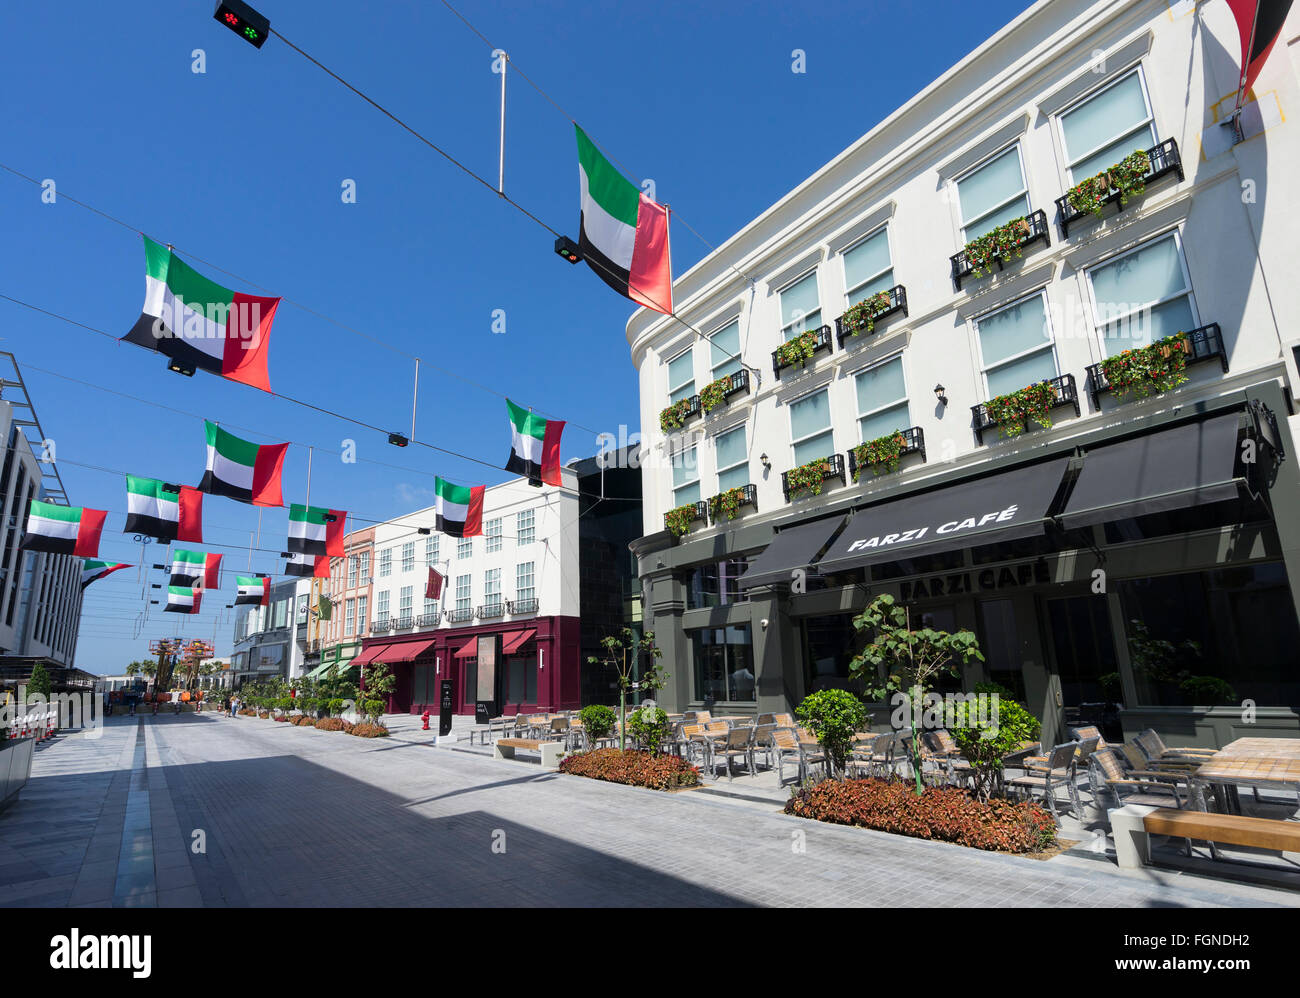 View of reproduction European street at new outdoor shopping arcade called Citywalk in Dubai United Arab Emirates - Stock Image